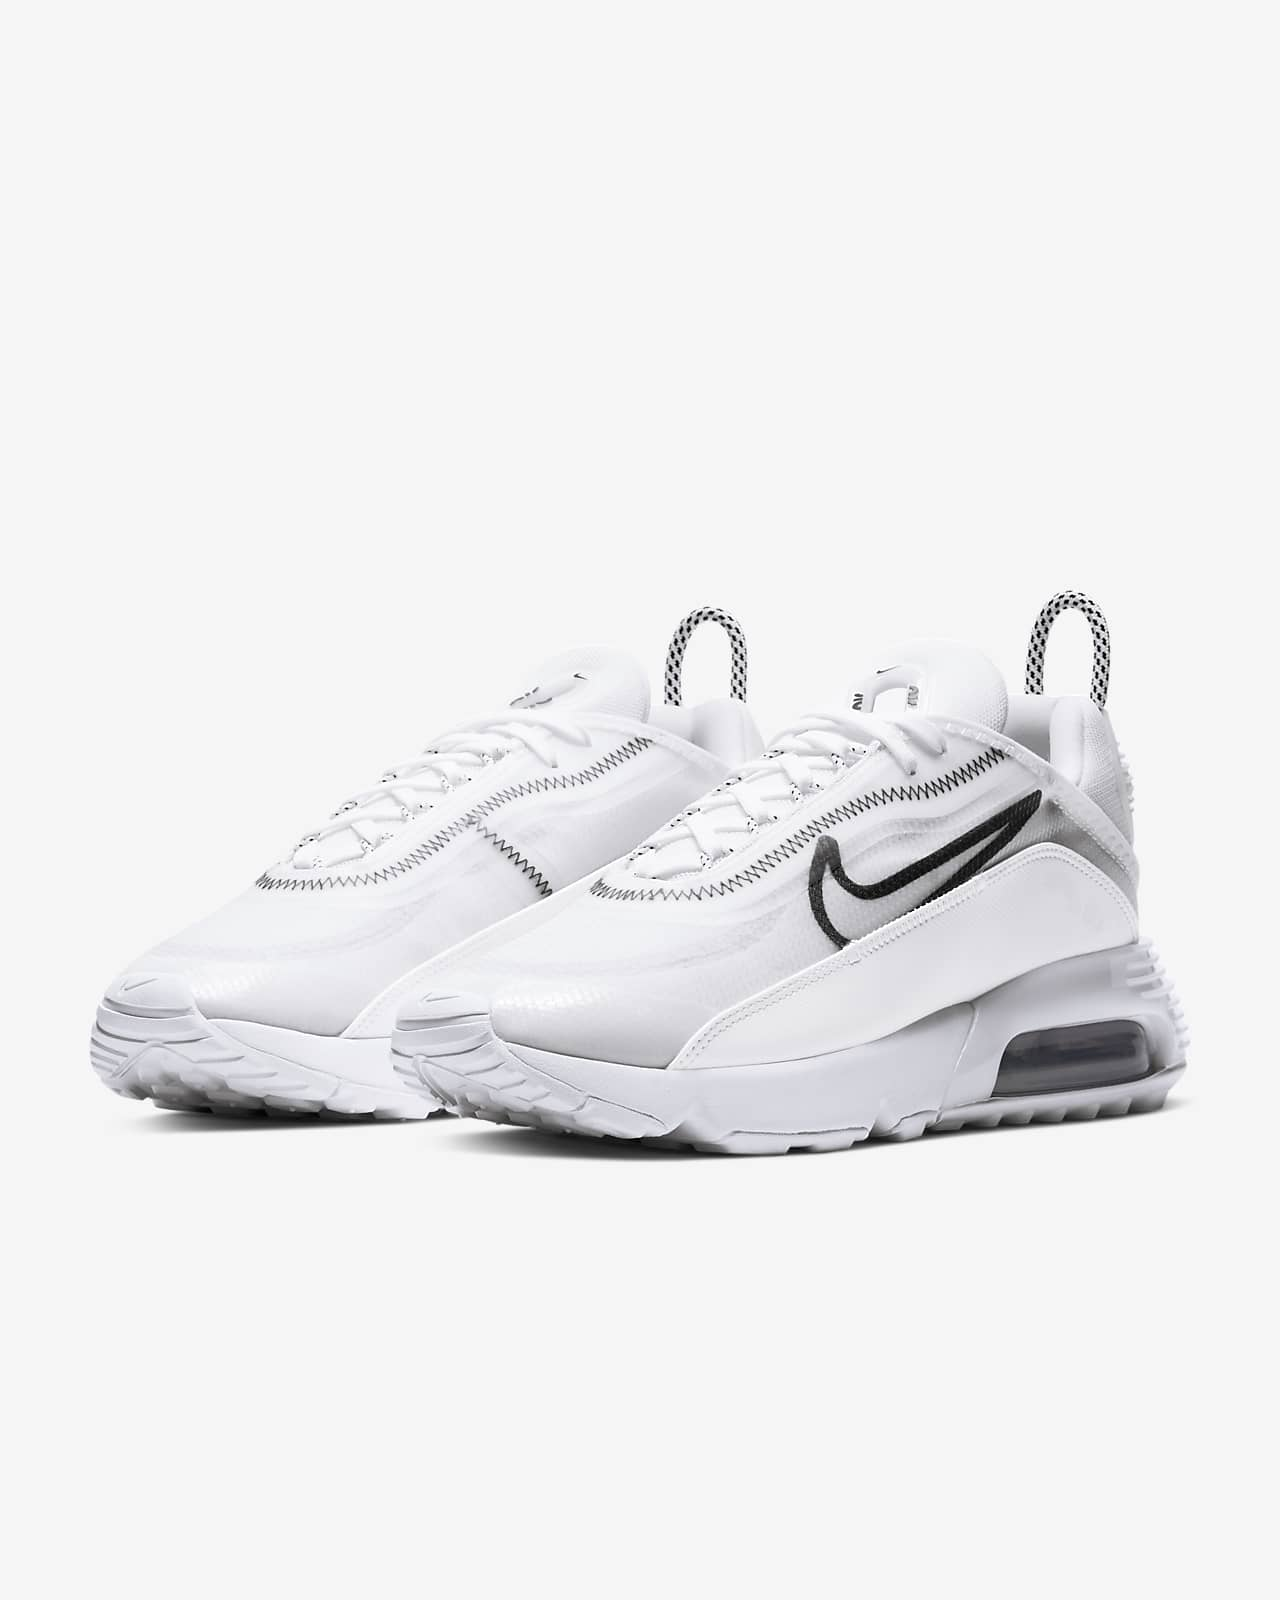 Nike Sportswear Air Max 2090 Femmes Baskets EU 40,5 US 9